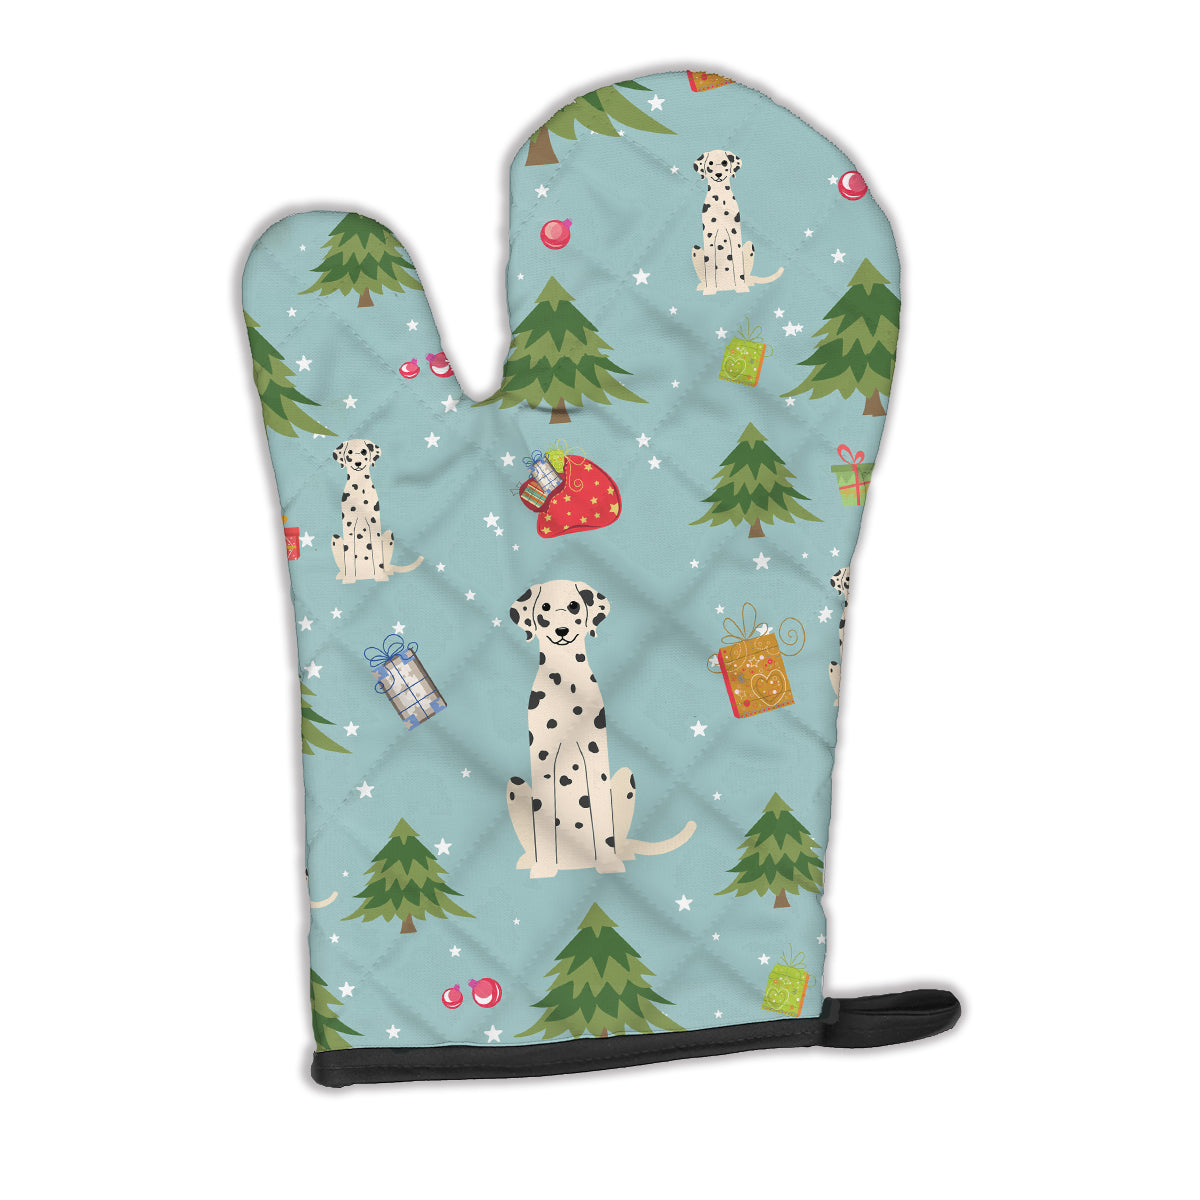 Christmas Dalmatian Oven Mitt BB4757OVMT by Caroline's Treasures